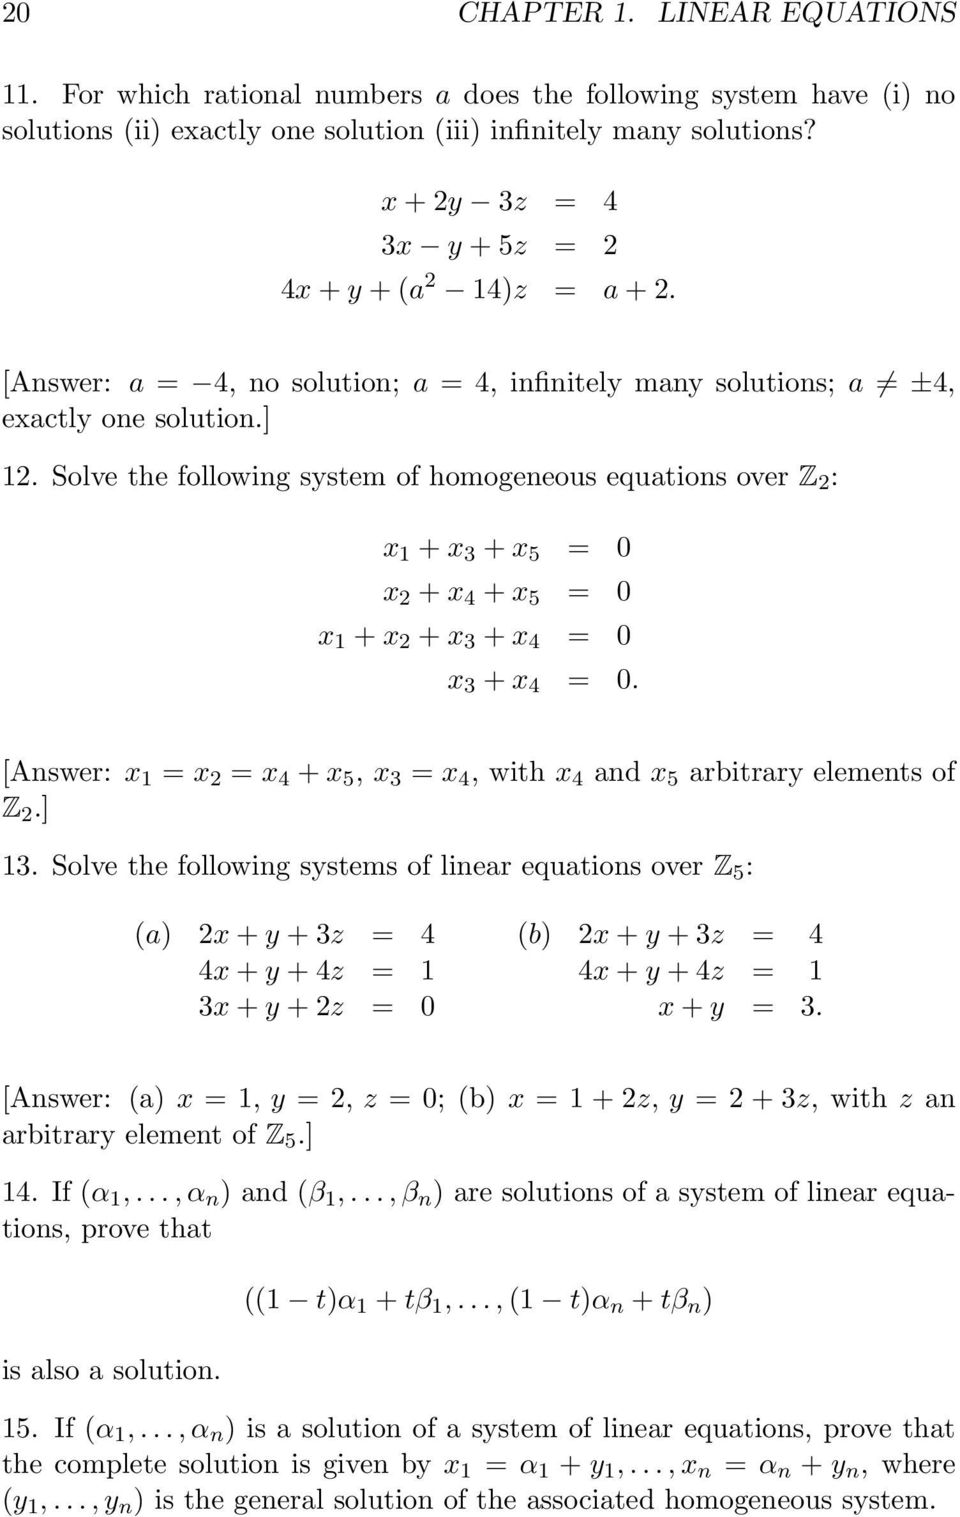 Solve the following system of homogeneous equations over Z : x 1 + x 3 + x 5 = 0 x + x 4 + x 5 = 0 x 1 + x + x 3 + x 4 = 0 x 3 + x 4 = 0.